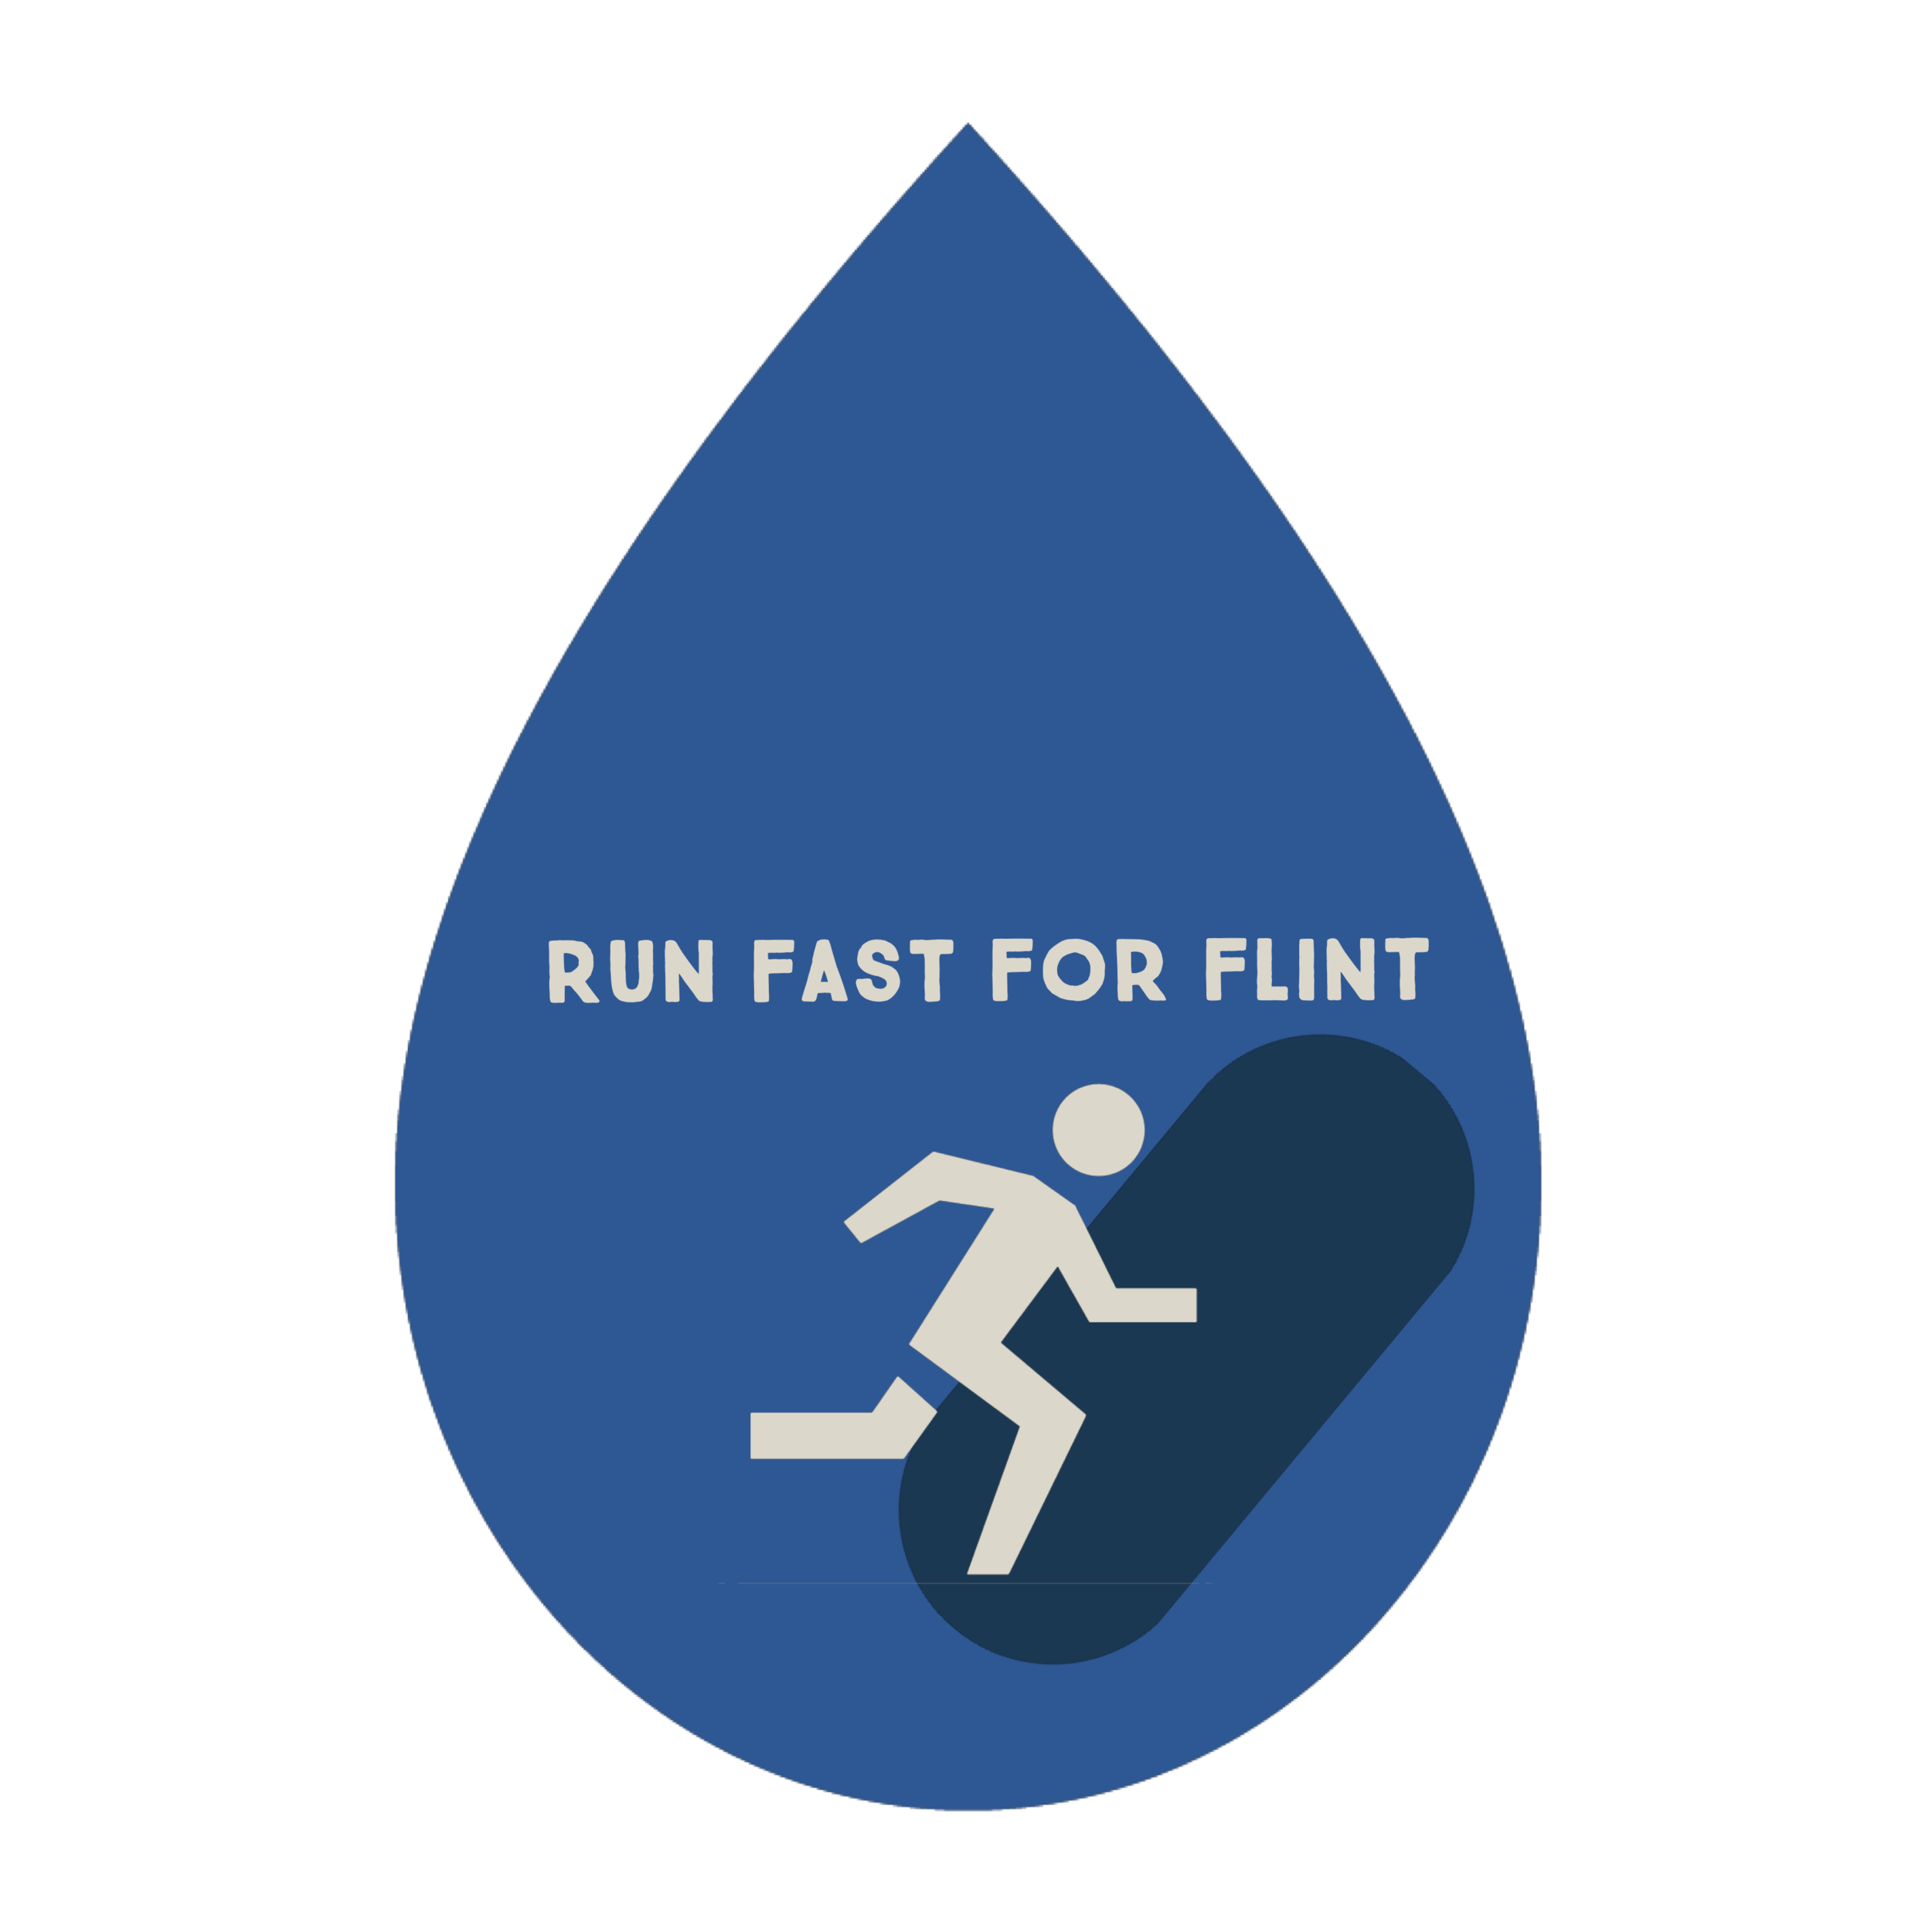 RUn Fast For flint - Combating the Flint water crisis one step at a time.